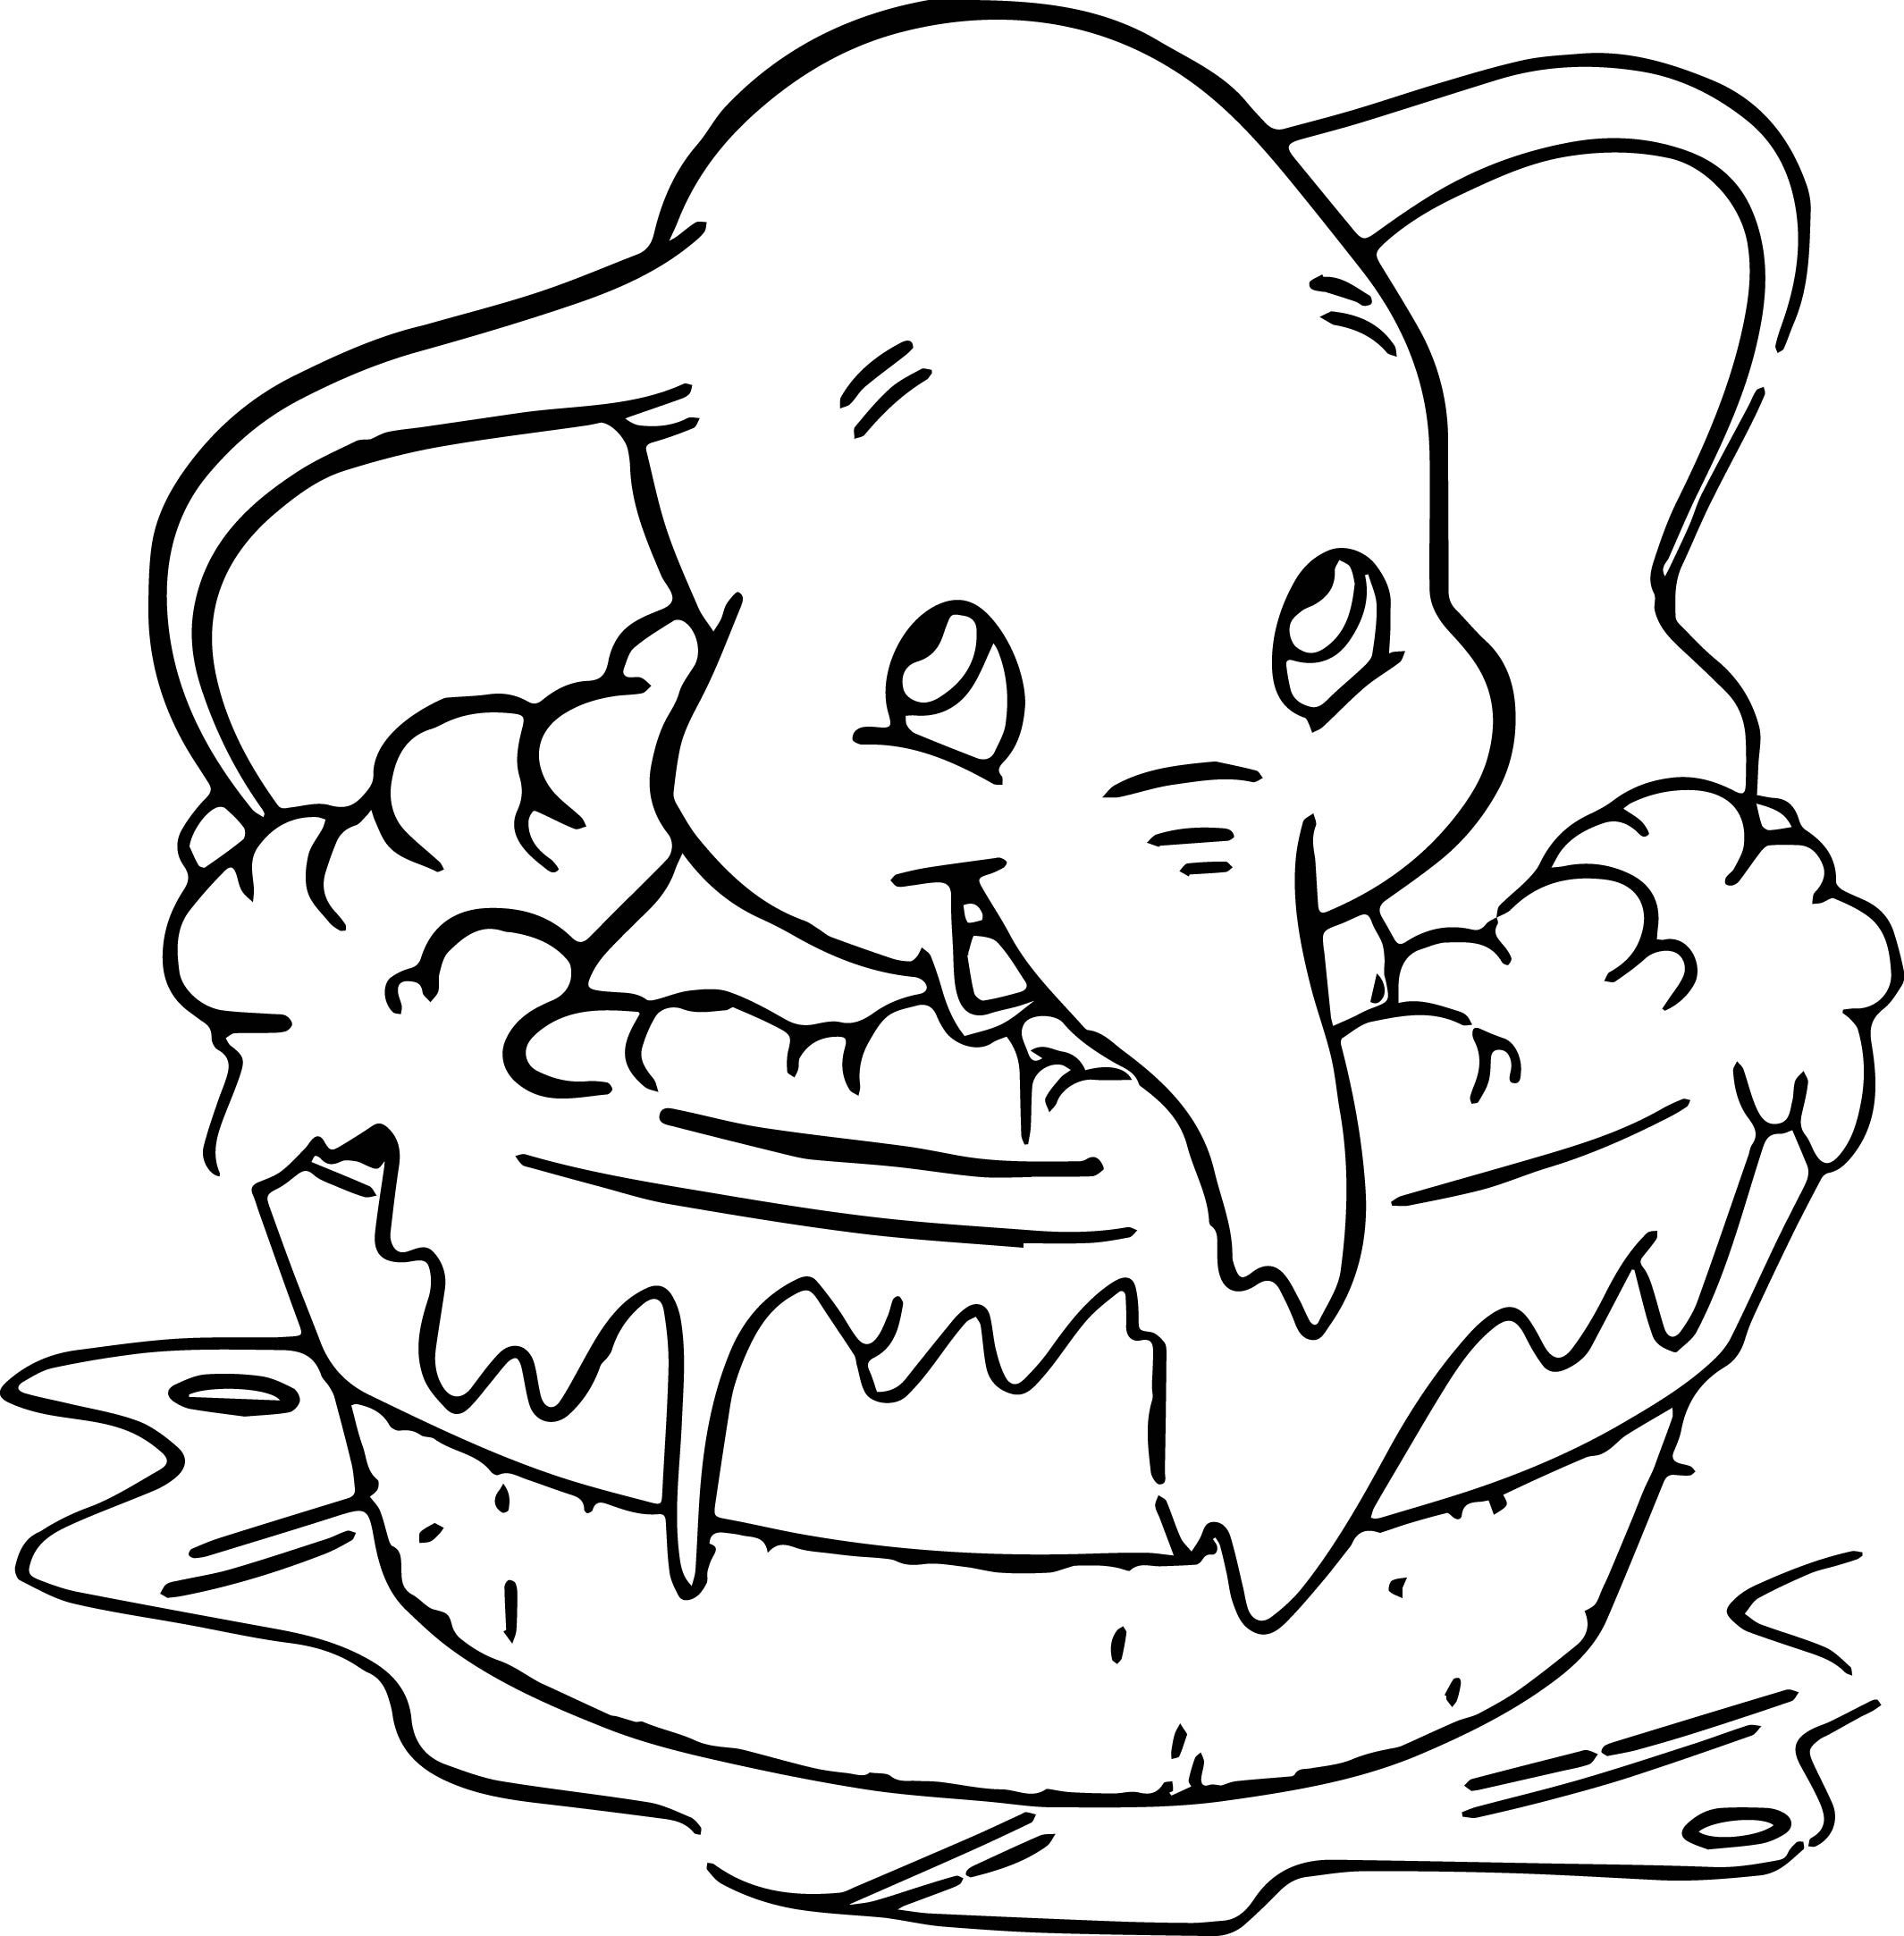 dumbo coloring pages dumbo coloring 01 the coloring pages the coloring book pages coloring dumbo